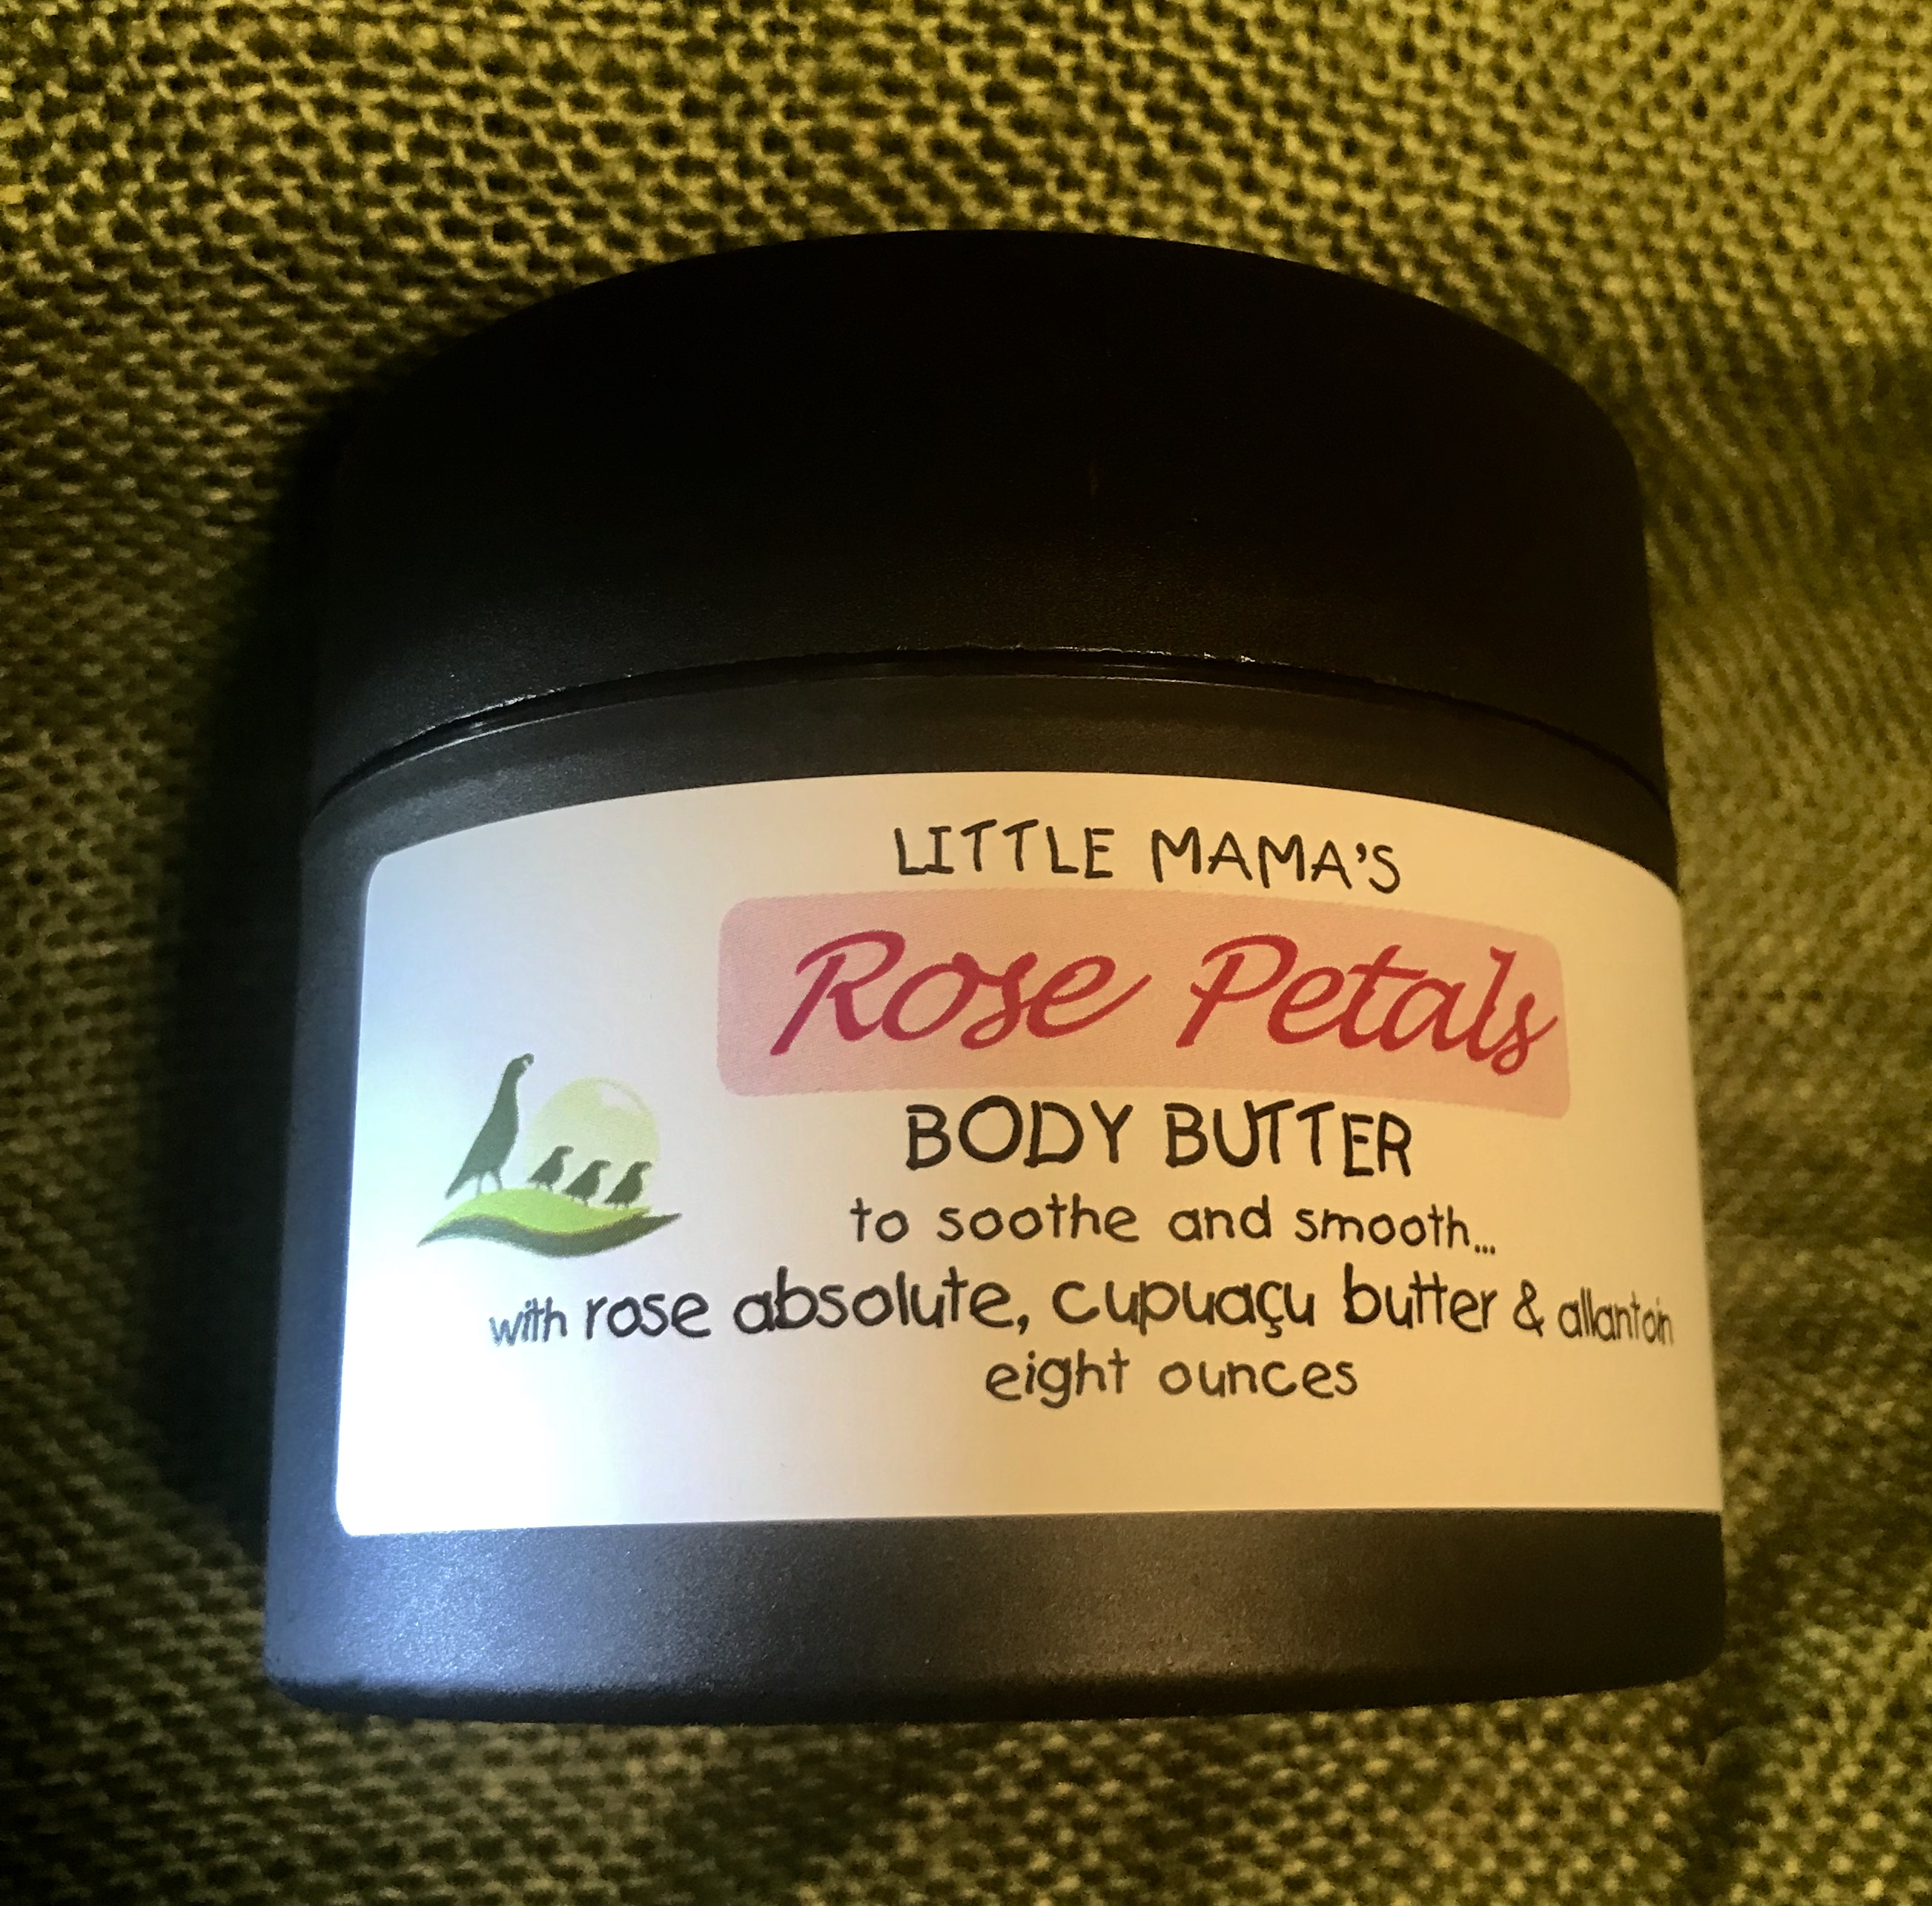 Rose Petals Body Butter